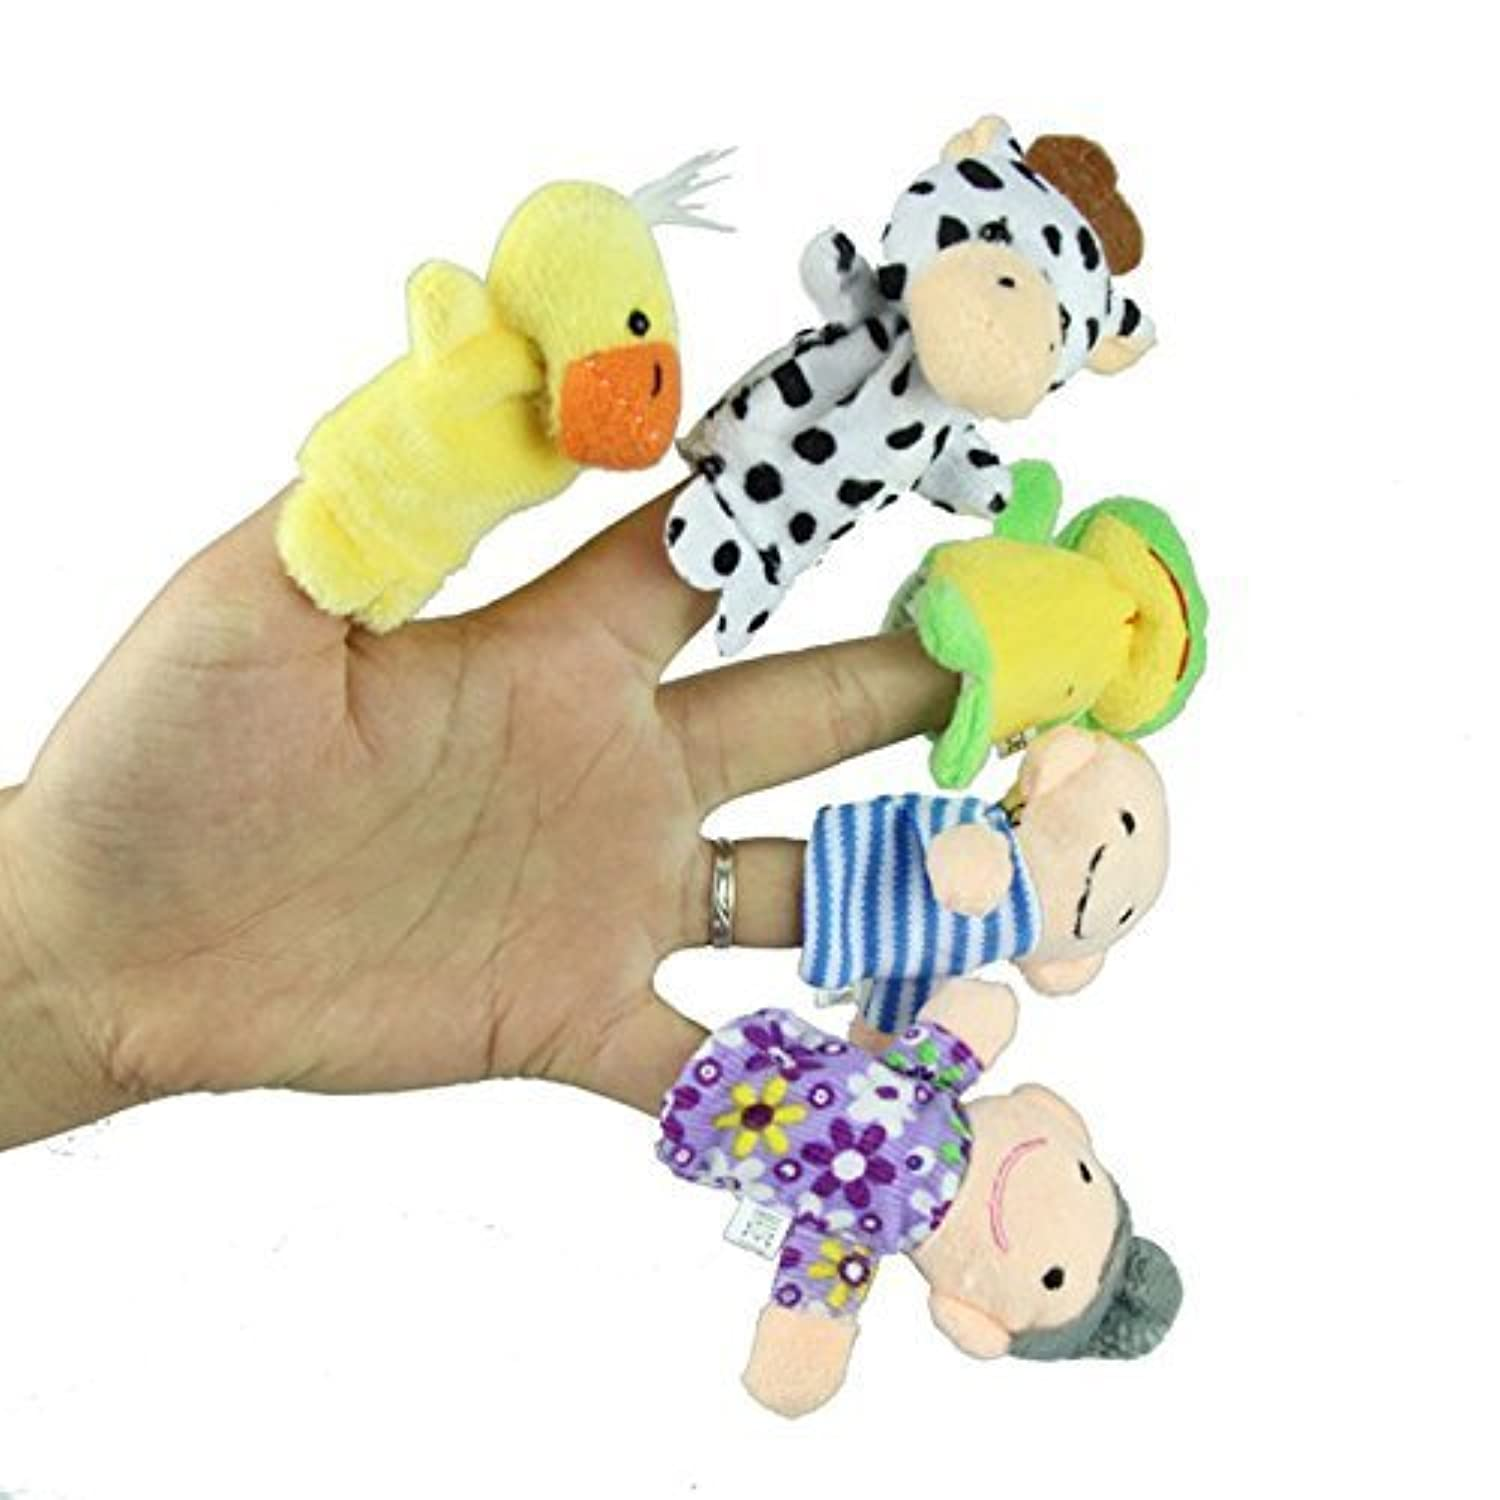 gqmart子供教育おもちゃ10個ベルベット動物とソフト6個PlushファミリPuppets for School shows Playtime Story Time